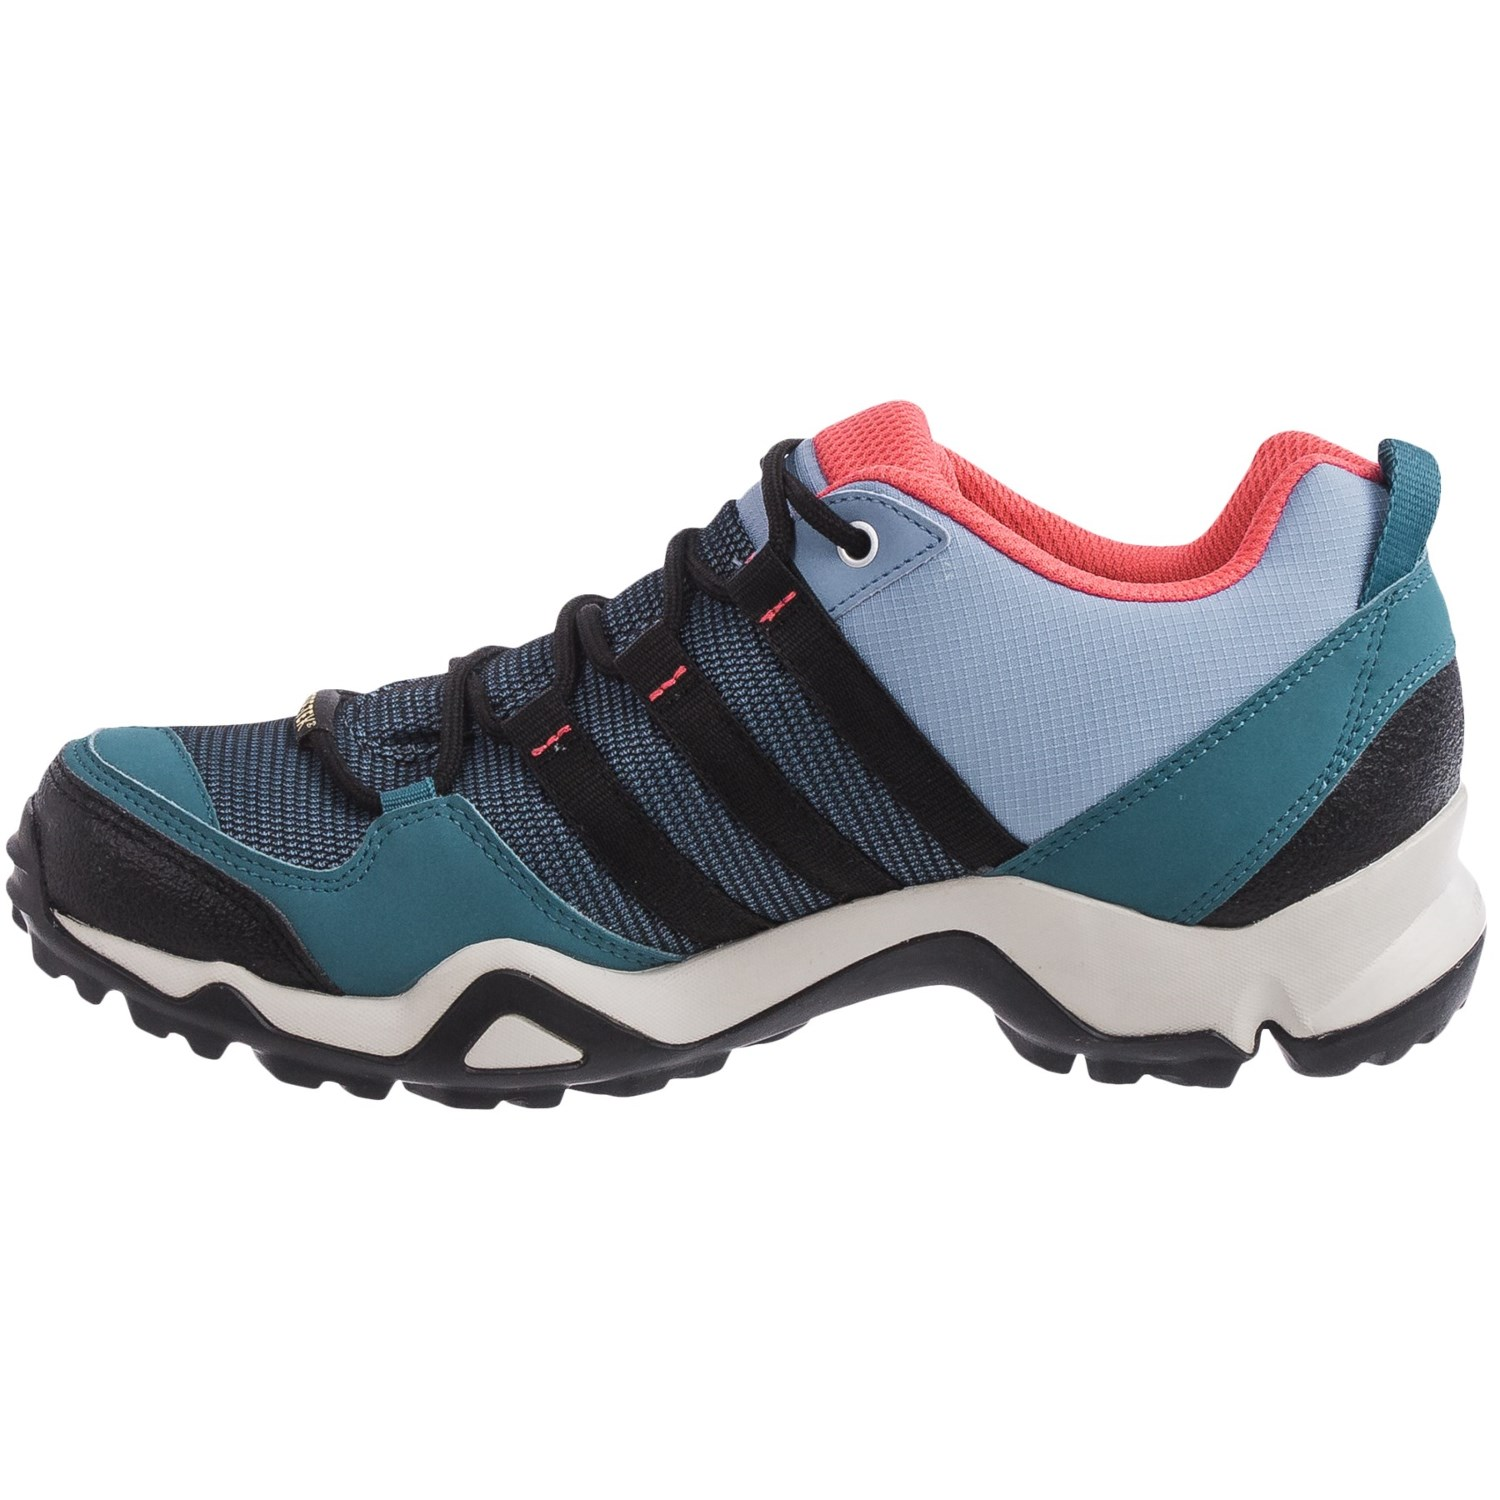 Adidas Outdoor Ax2 Gore Tex 174 Hiking Shoes For Women